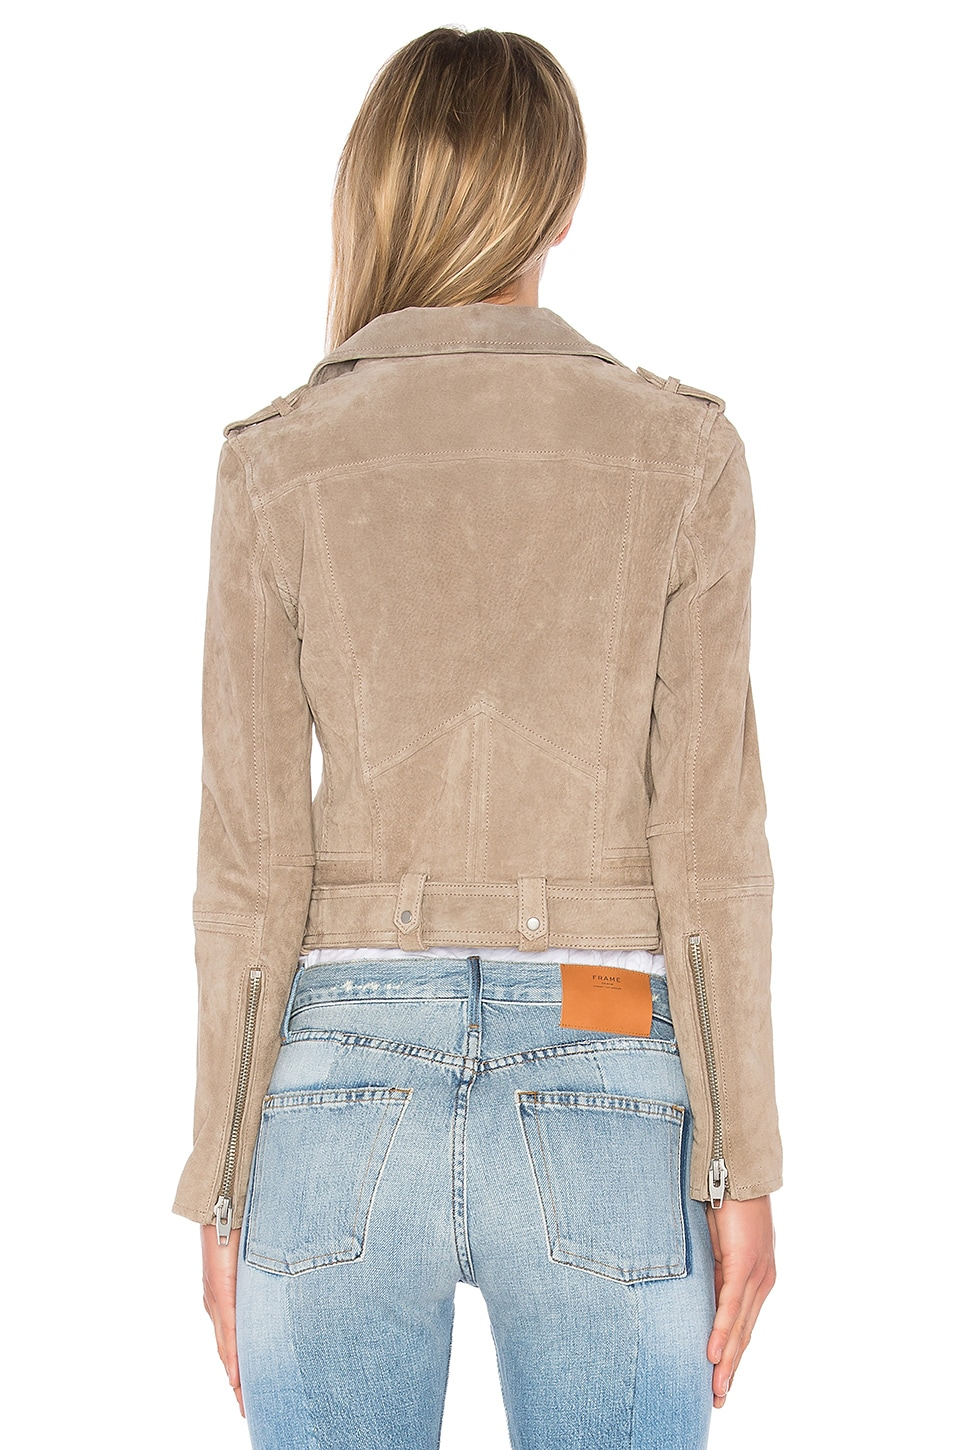 Suede Moto Jacket, view 3, click to view large image.